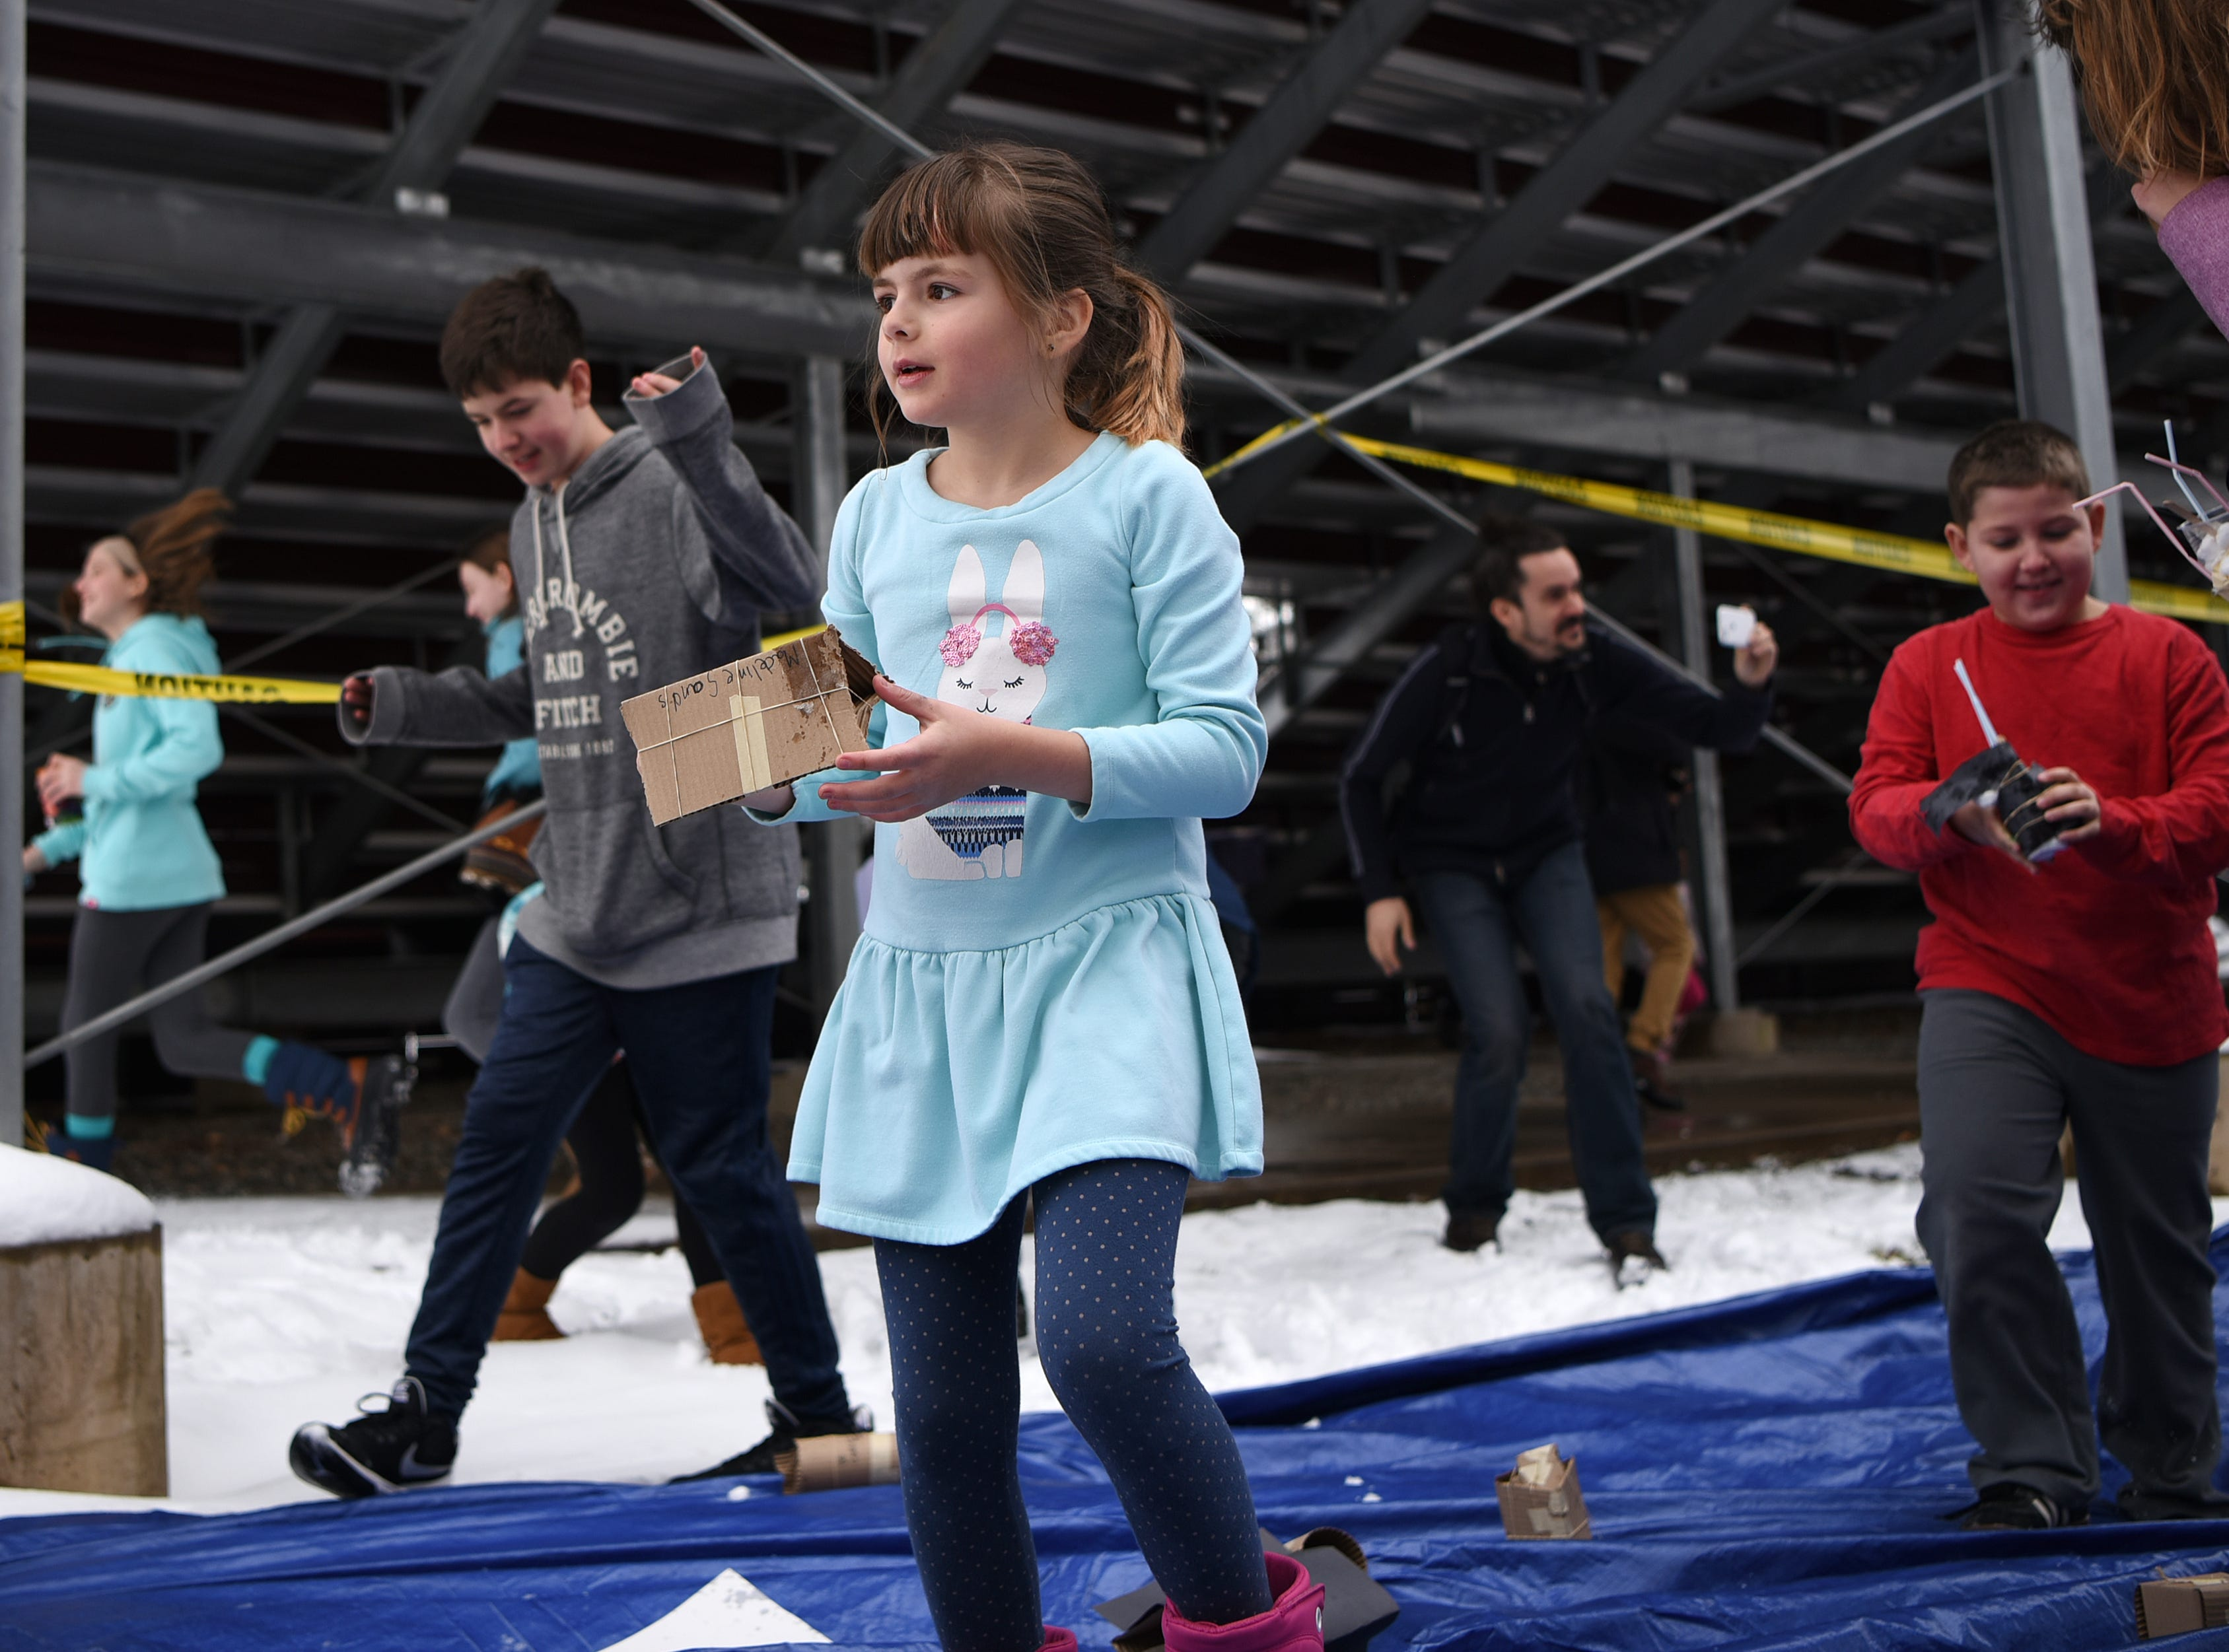 Madeline Sands, 8, checks to see if her egg landed safely during the Egg Drop. Children must create a device that will prevent their egg from breaking from a 30 foot drop. This is one of many hands on activities during Super Science Saturday held at Ridgewood High School in Ridgewood on Saturday March 2, 2019.